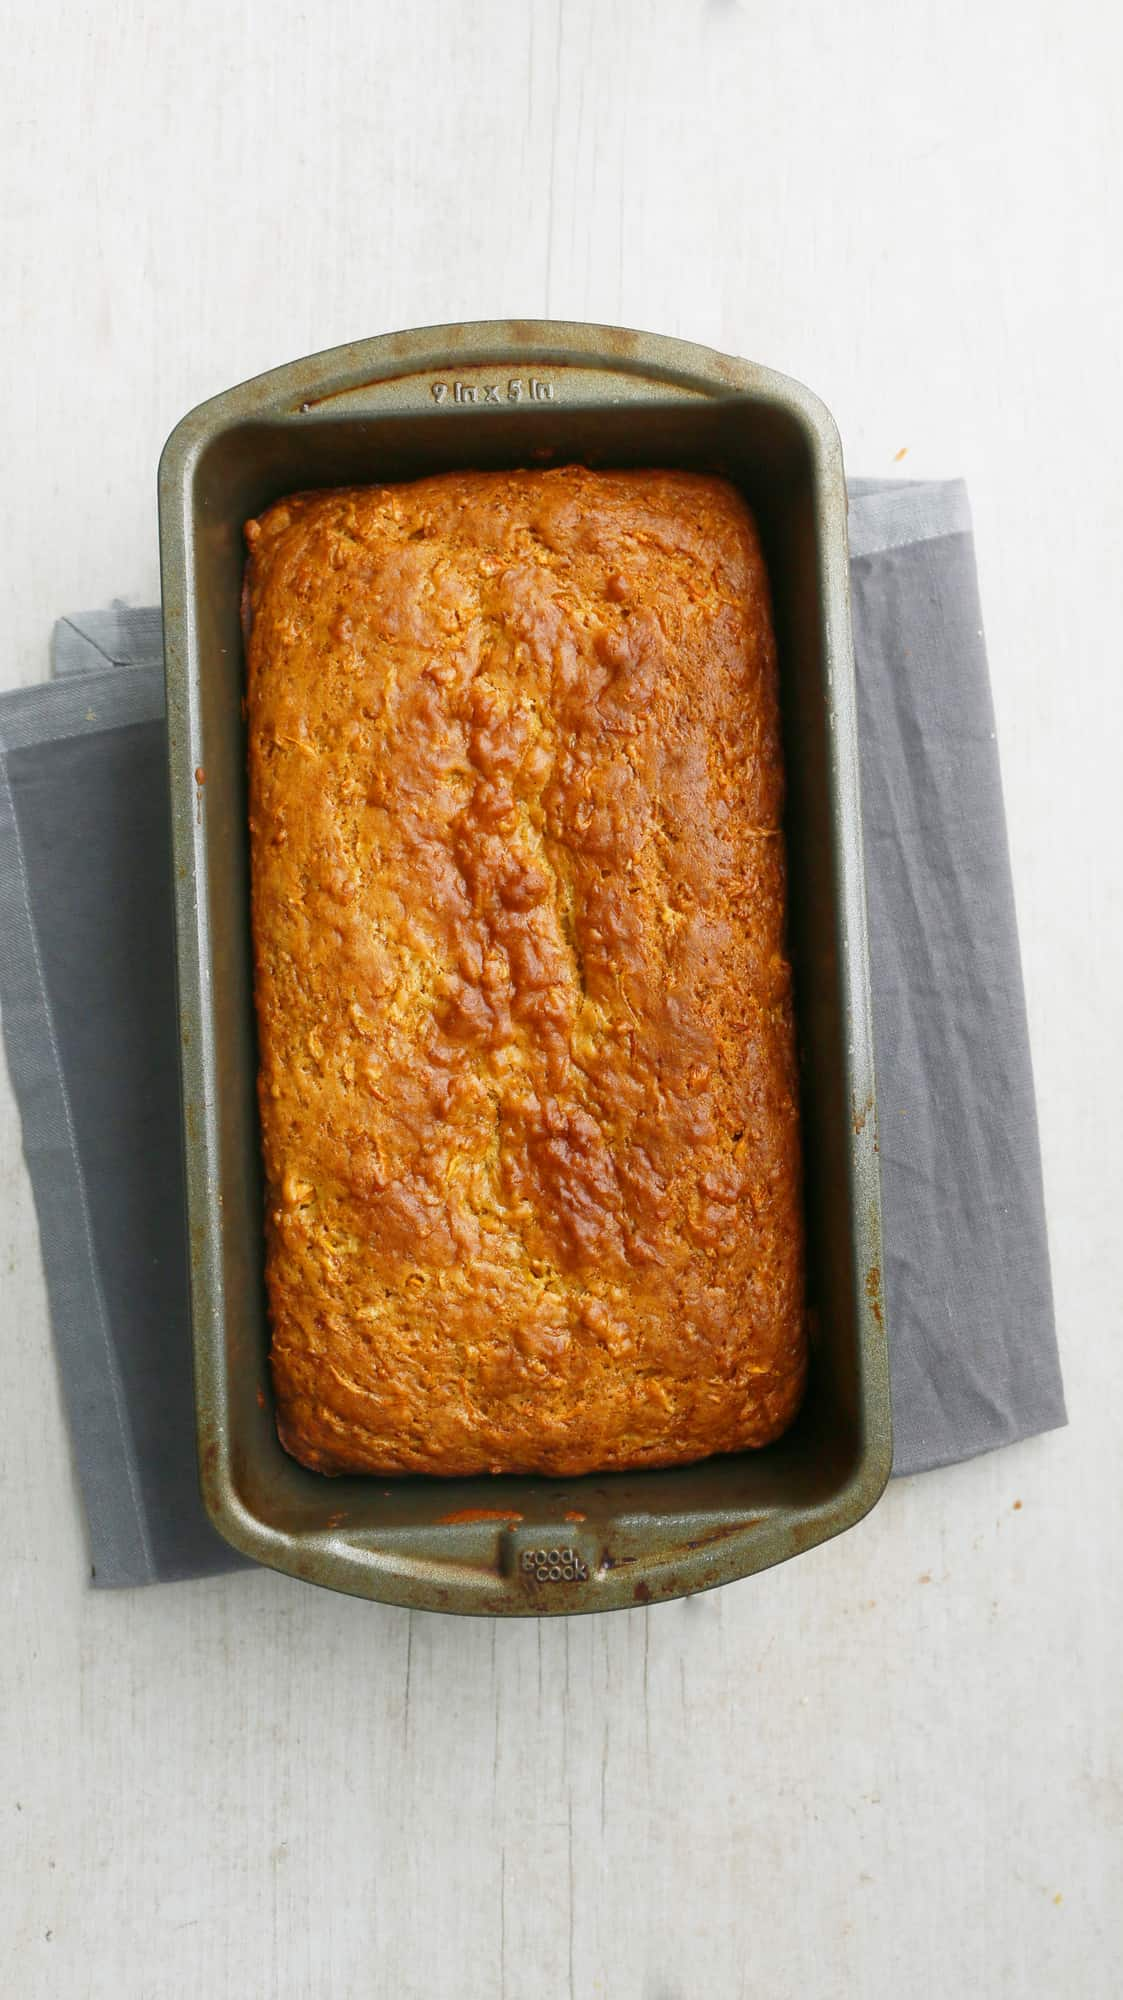 baked loaf of persimmon bread placed on a grey napkin